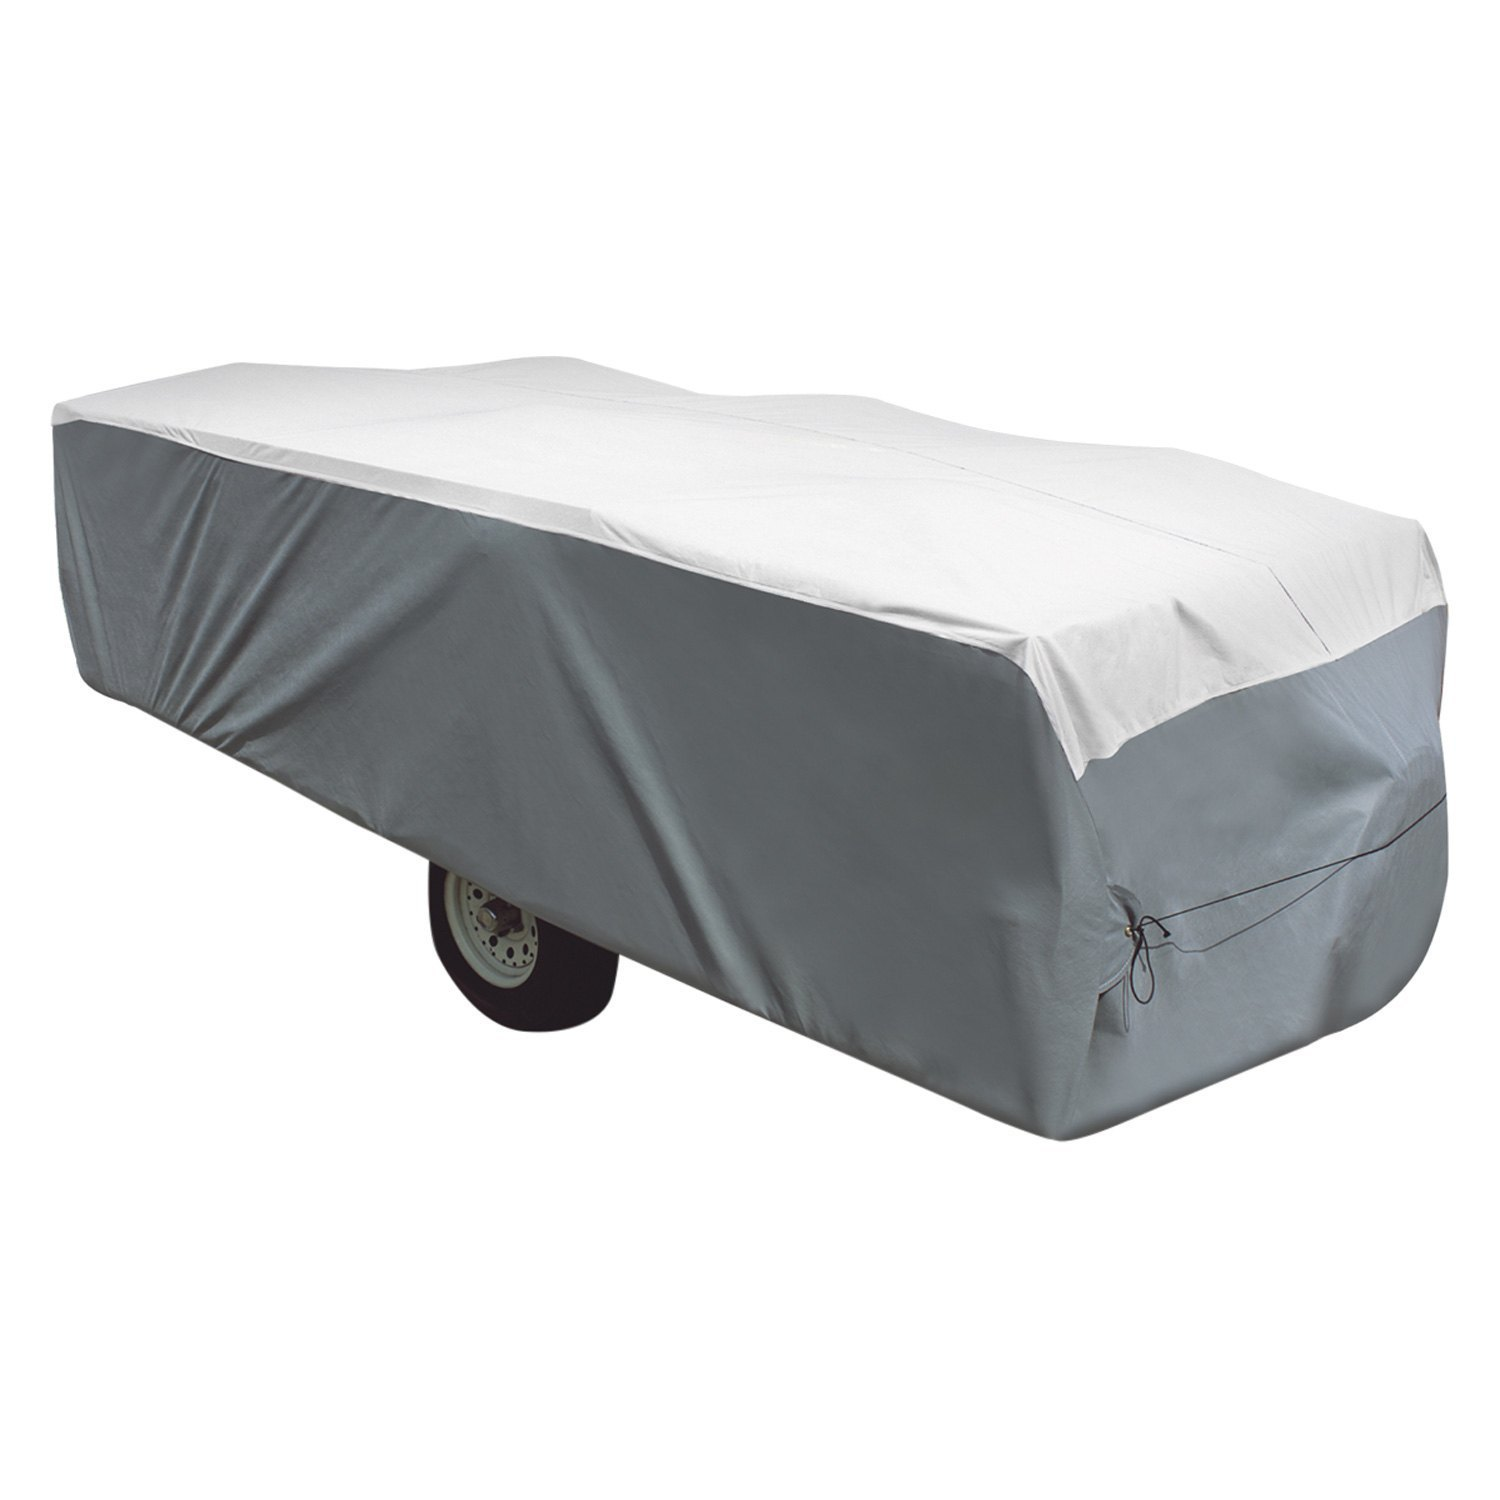 Adco 22891 Dupont Tyvek Pop Up Trailer Cover